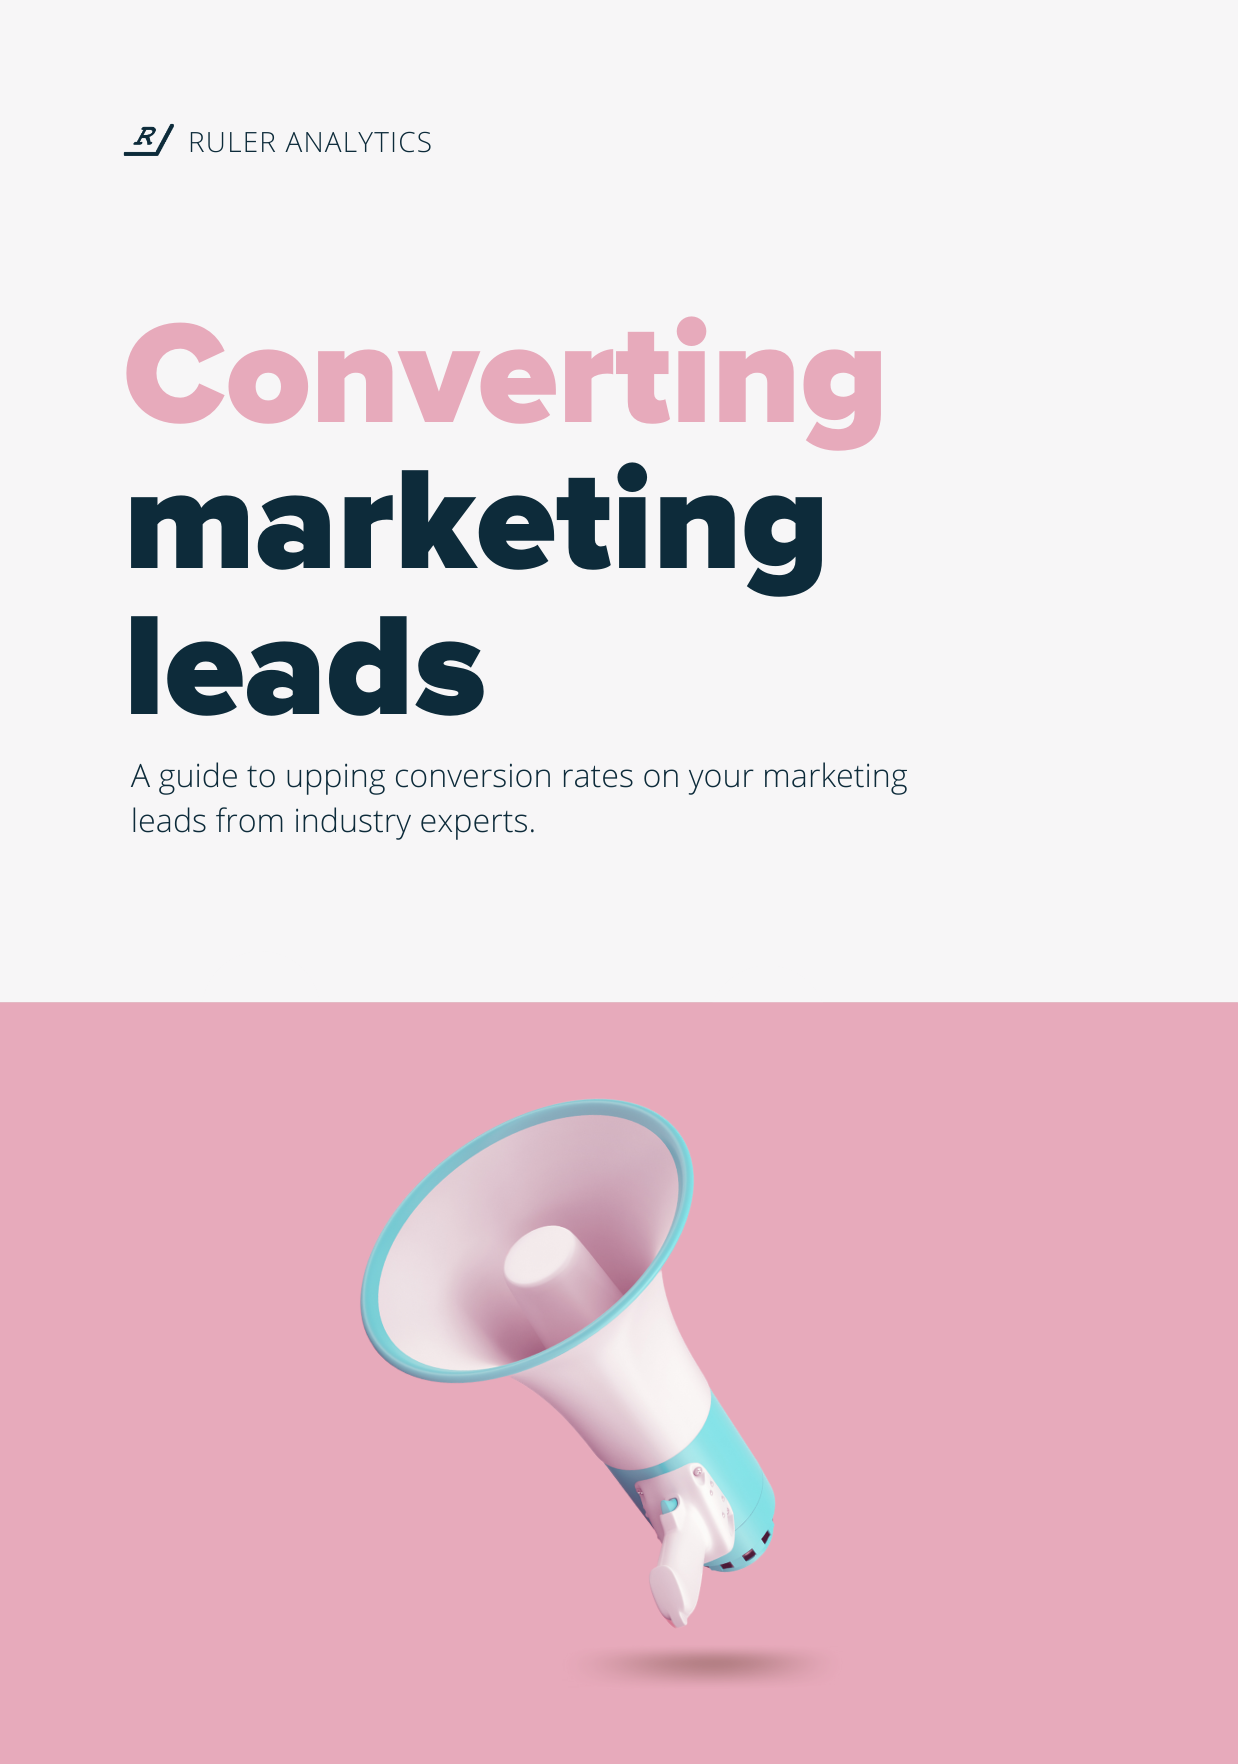 Converting Marketing Leads to Sales